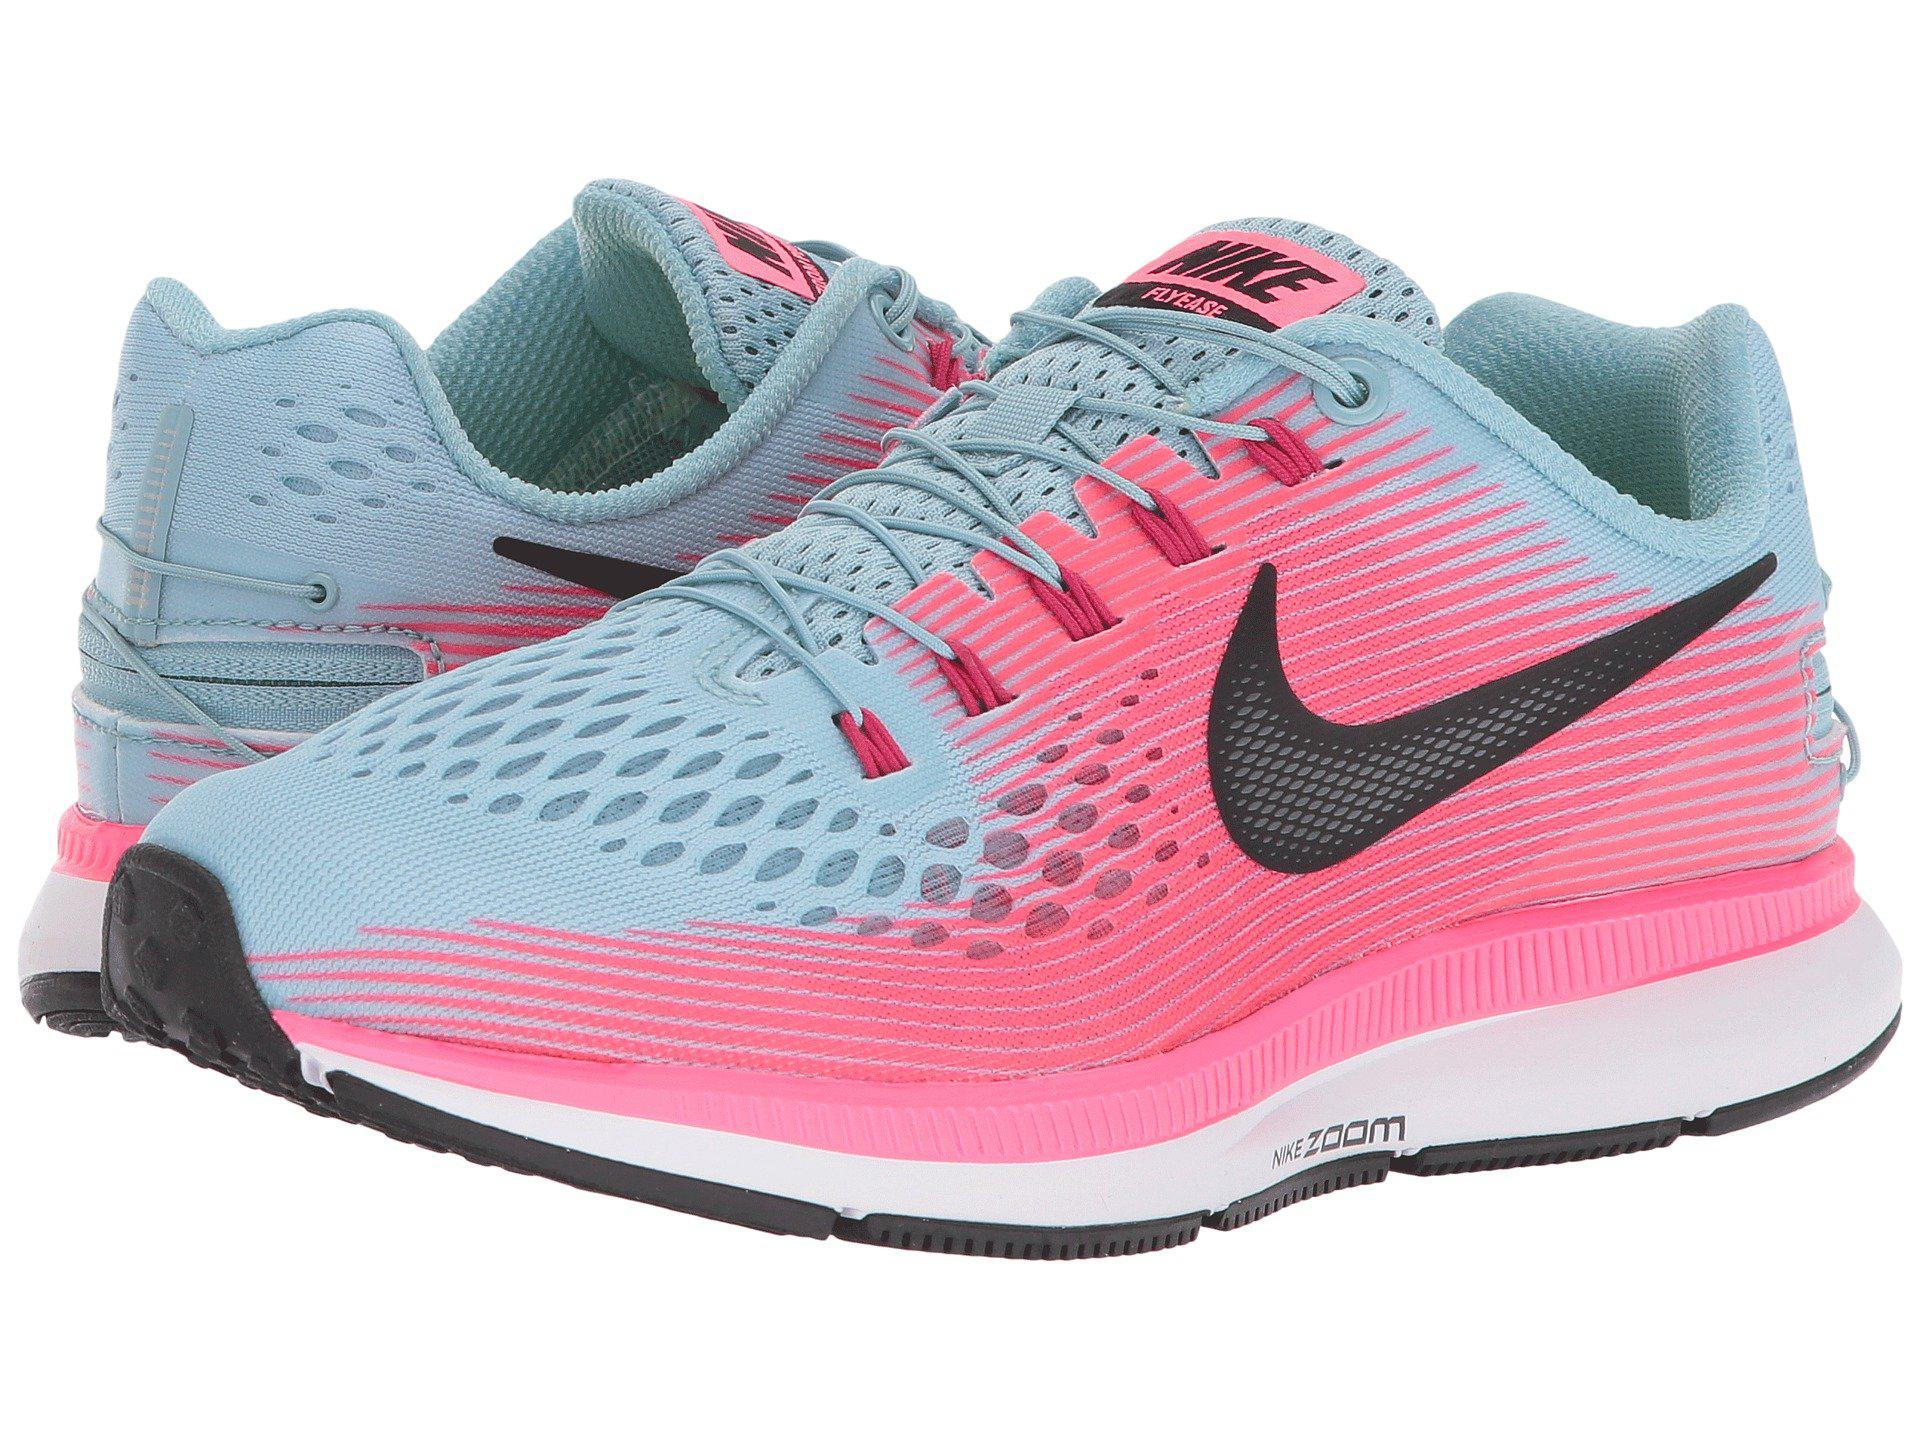 Nike - Pink Air Zoom Pegasus 34 Flyease - Lyst. View Fullscreen. There was  a problem loading this image.